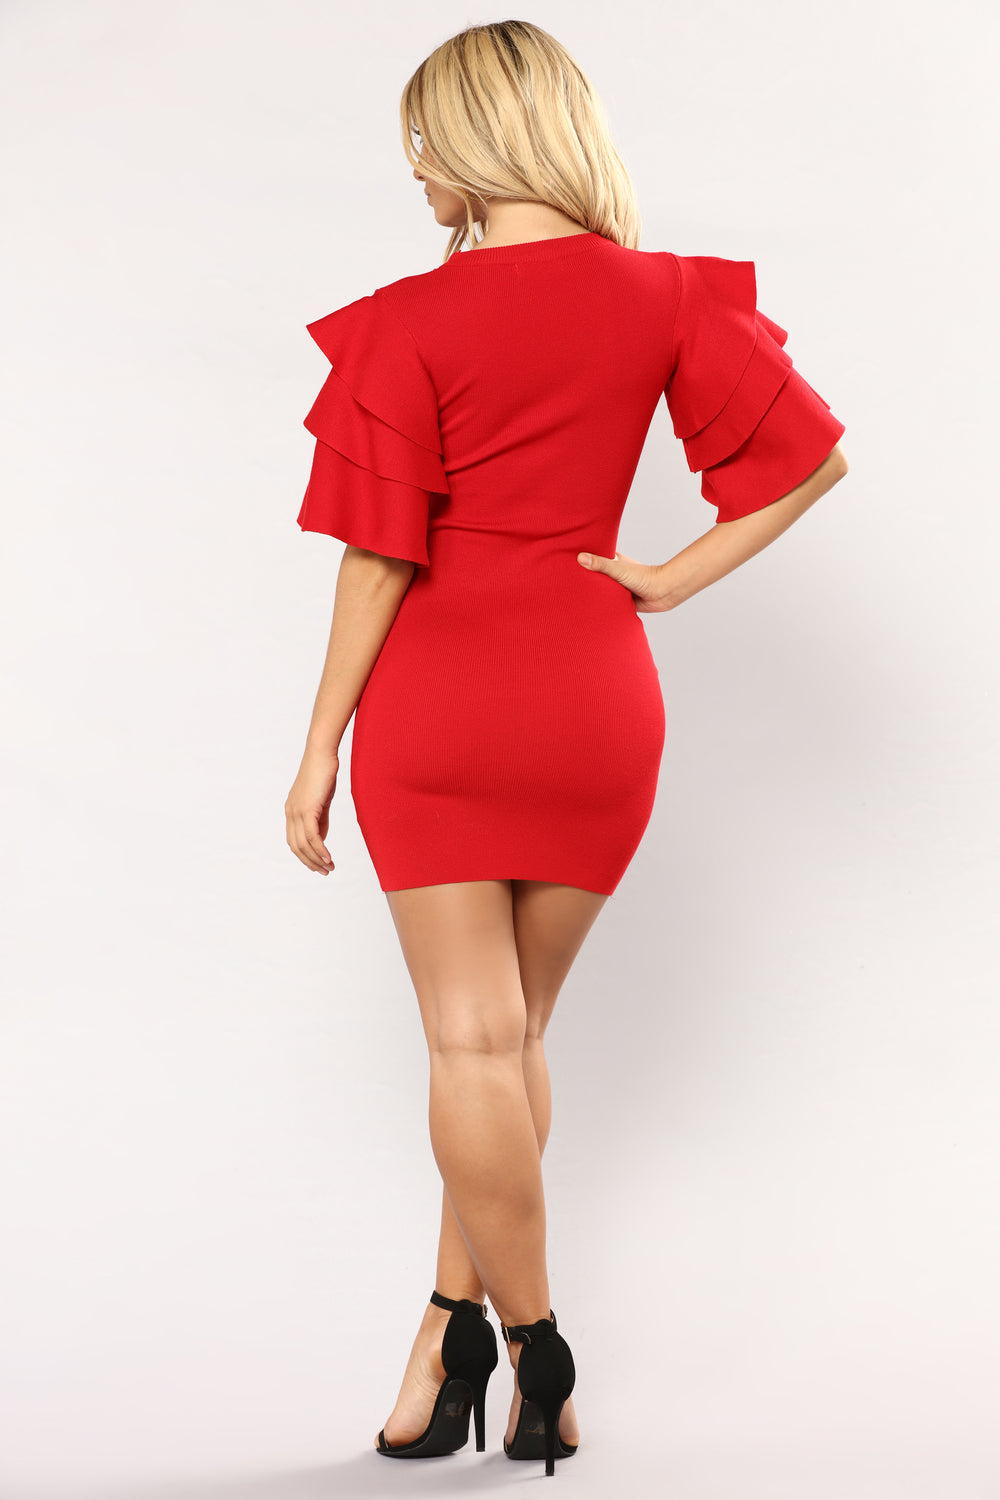 Madden Knit Dress - Red